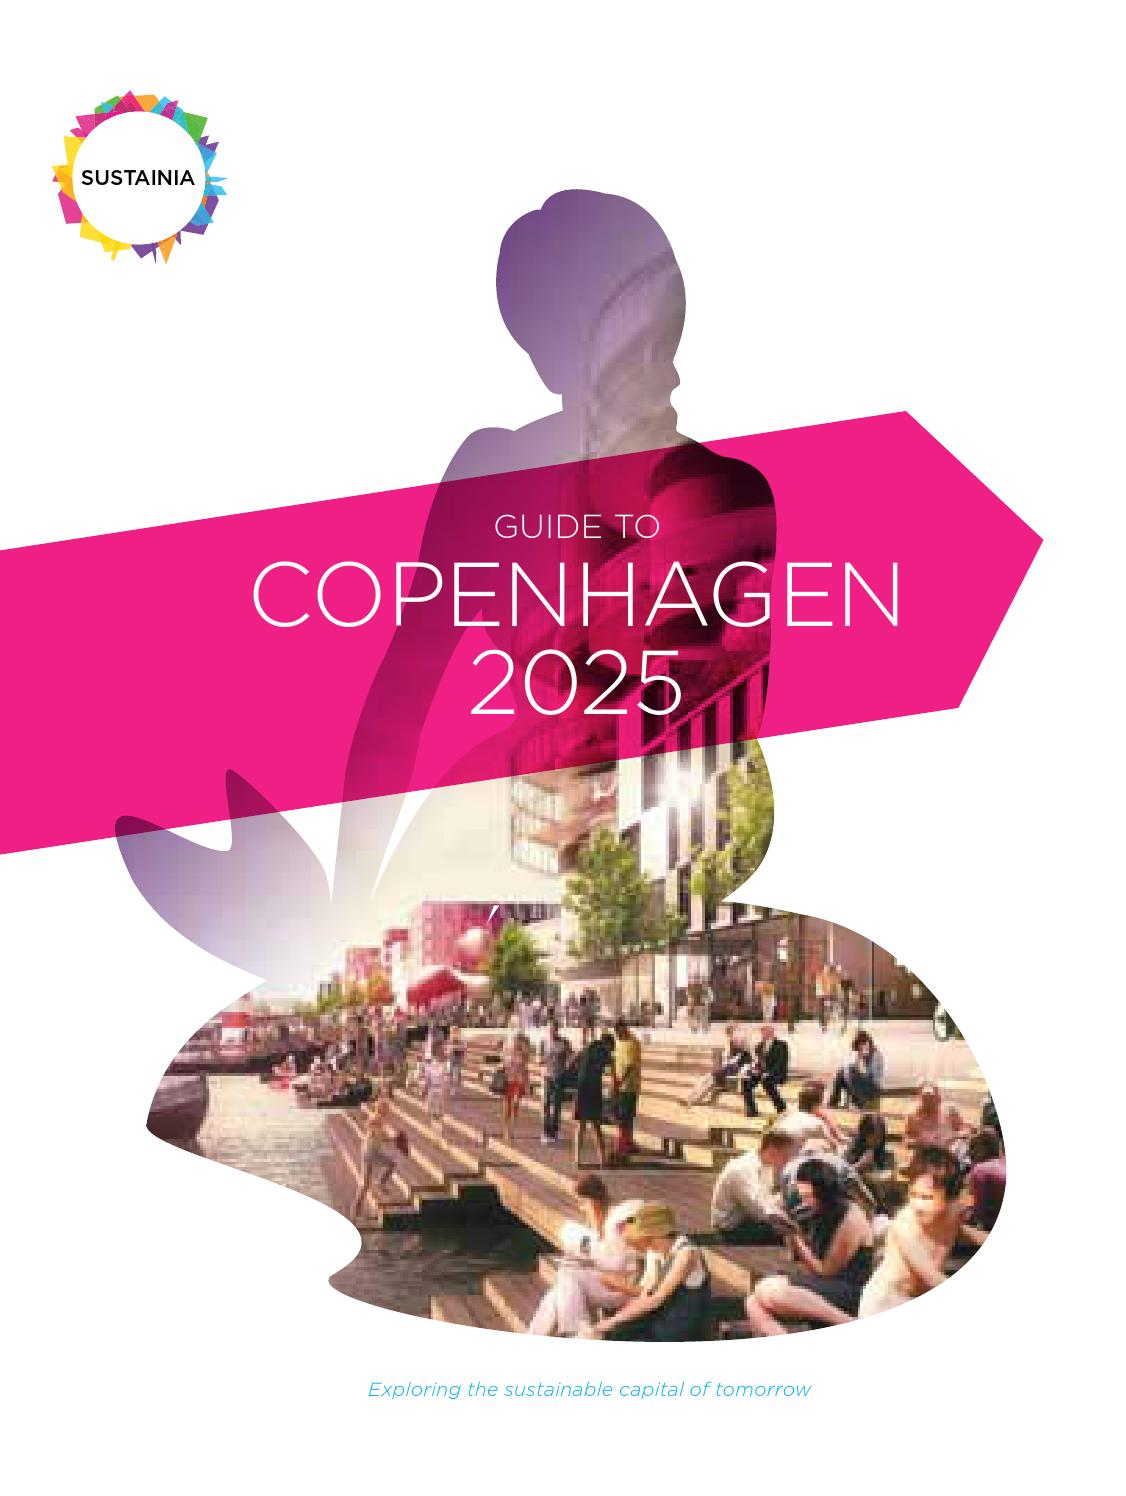 Guide To Copenhagen 2025 By Sustainia Issuu Circuit Board Design Online Shoppingthe World Largest